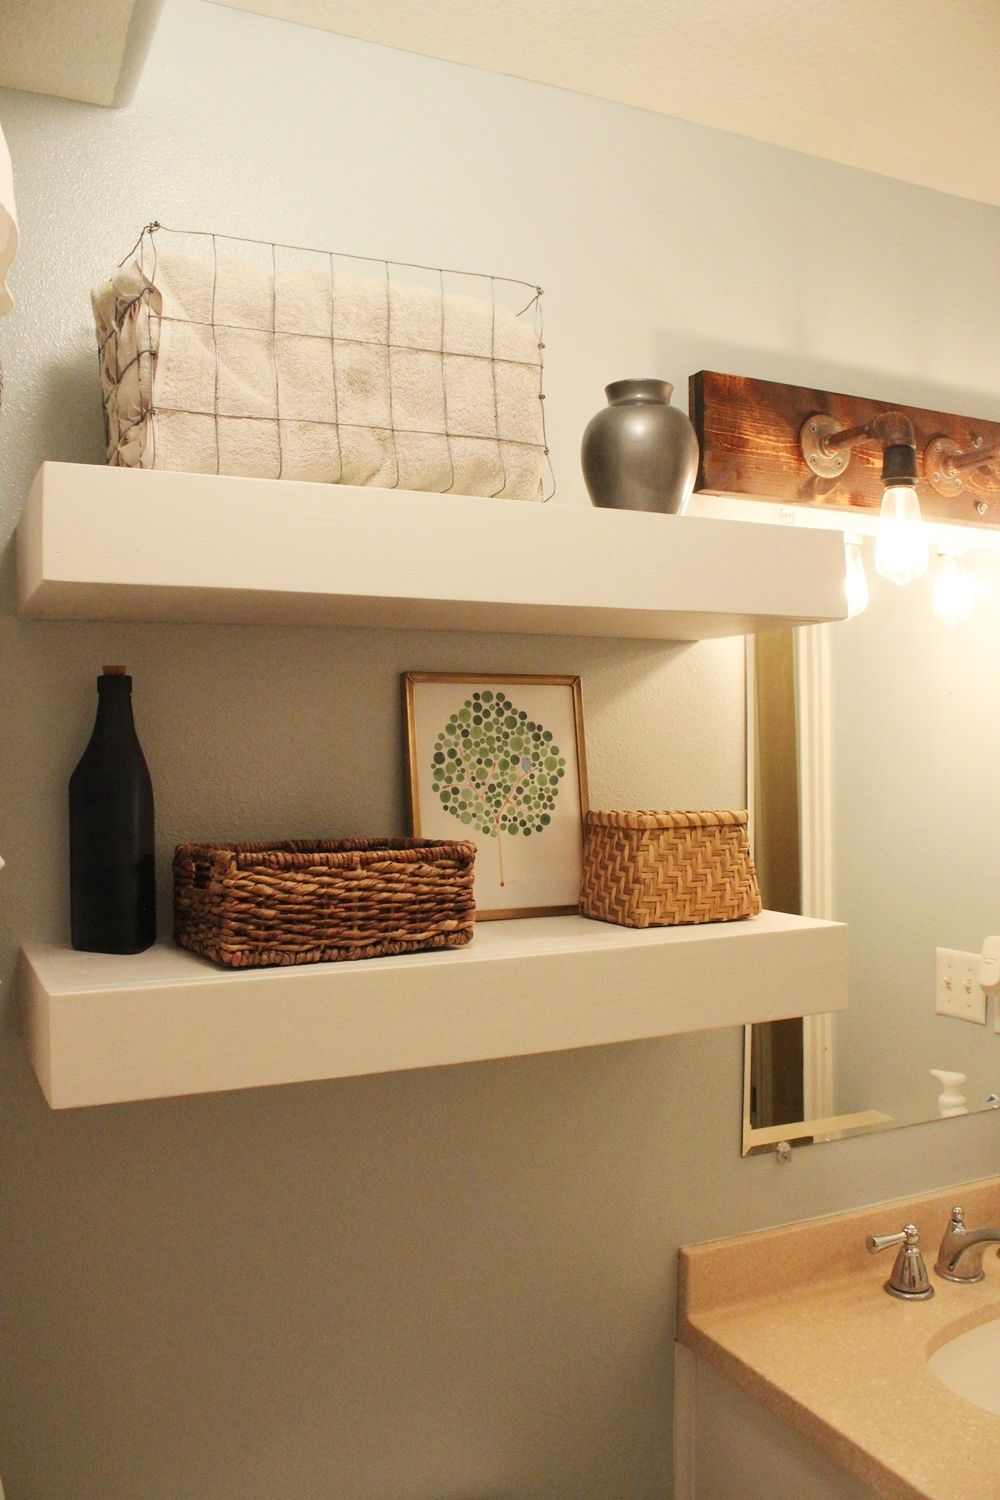 diy-floating-shelves-decor